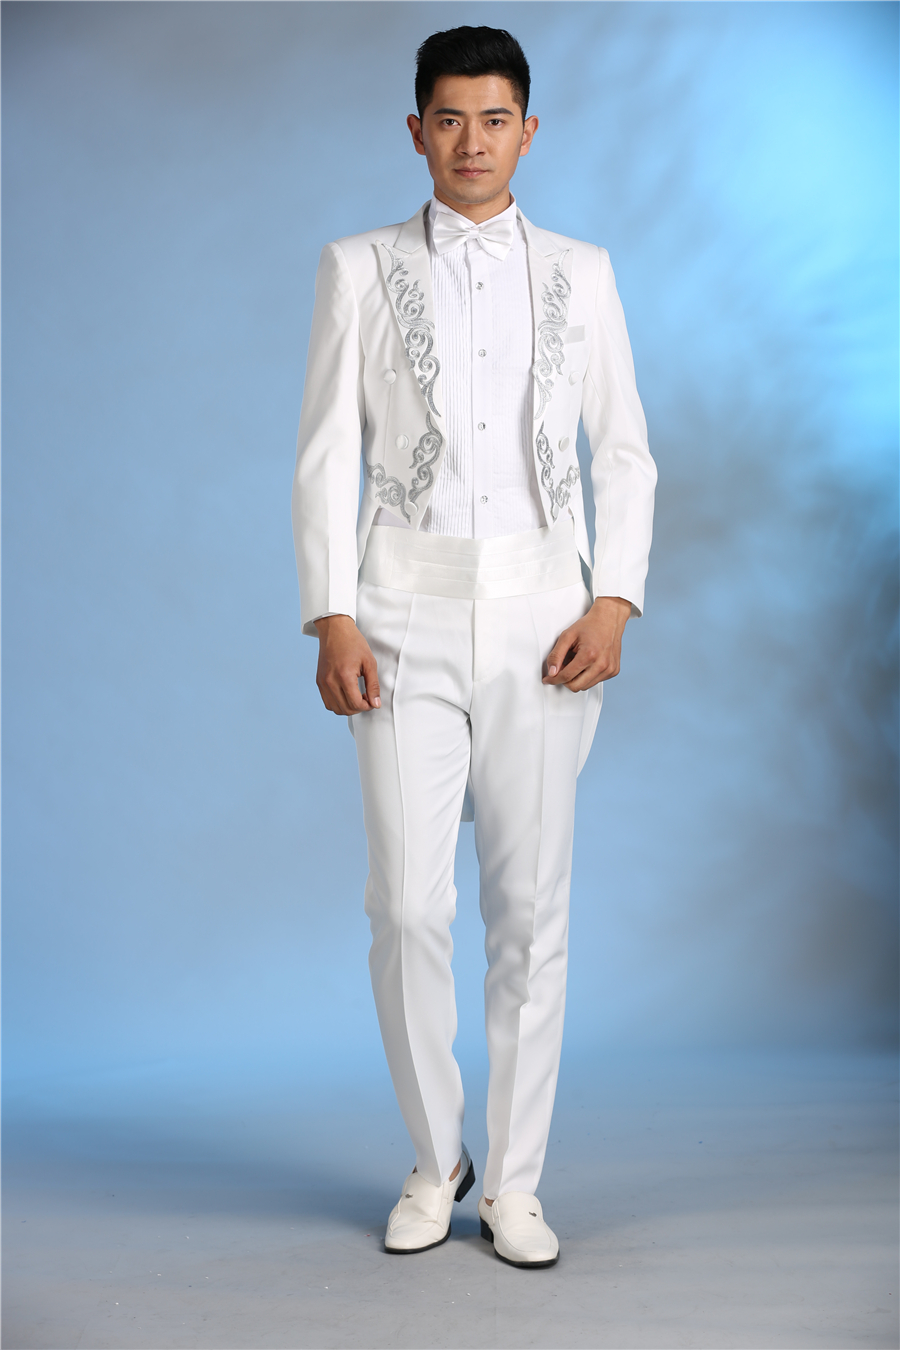 Colorful Mens Wedding Suits Manchester Image - Womens Dresses ...